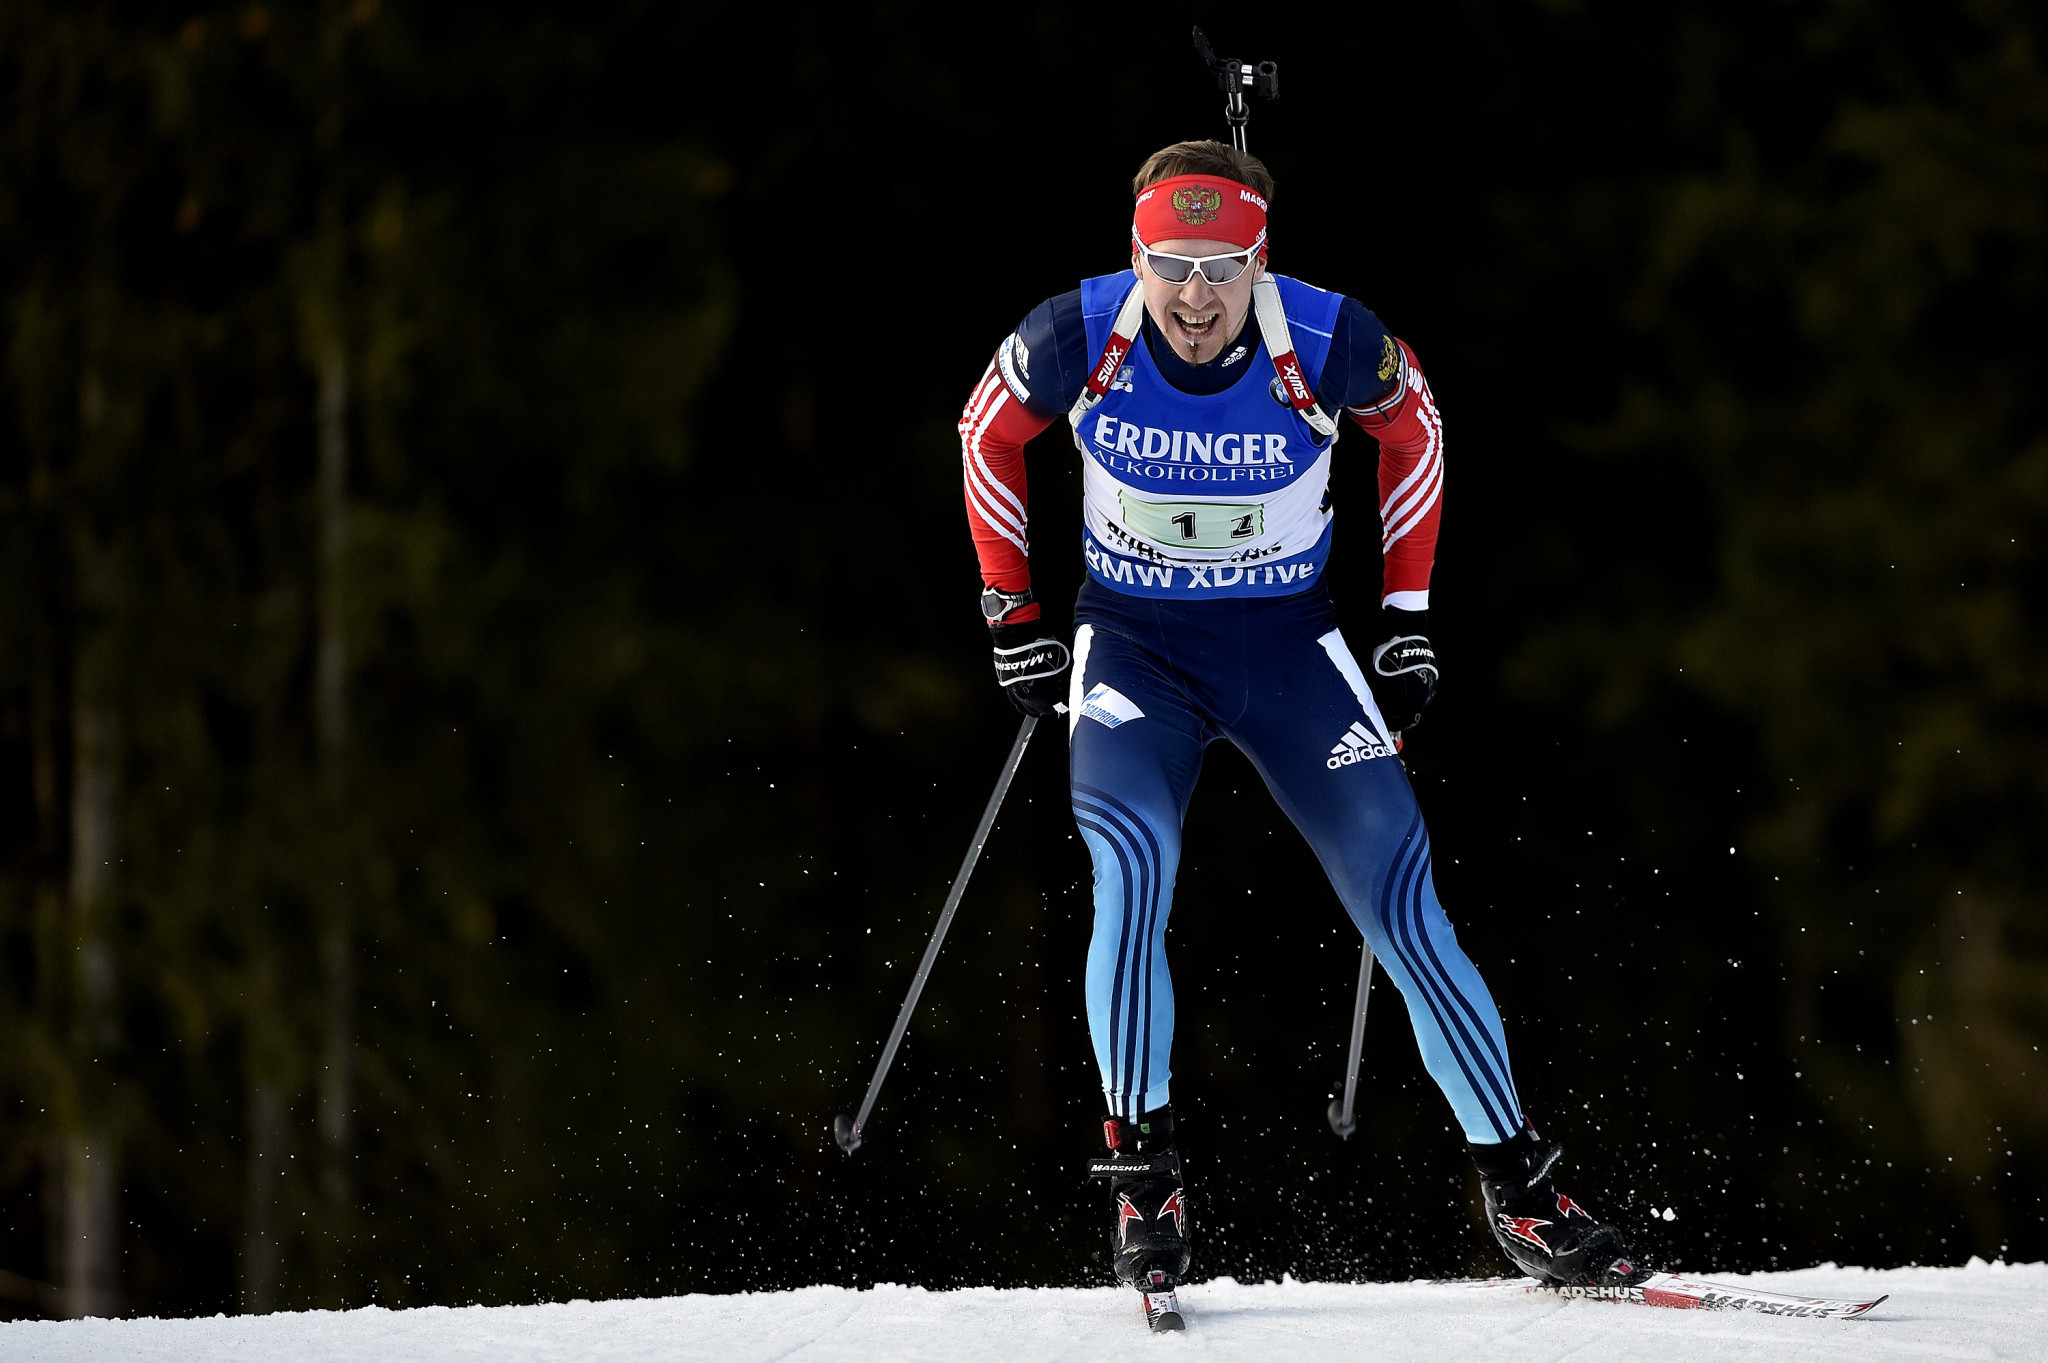 Lapshin vows to challenge provisional suspension from biathlon